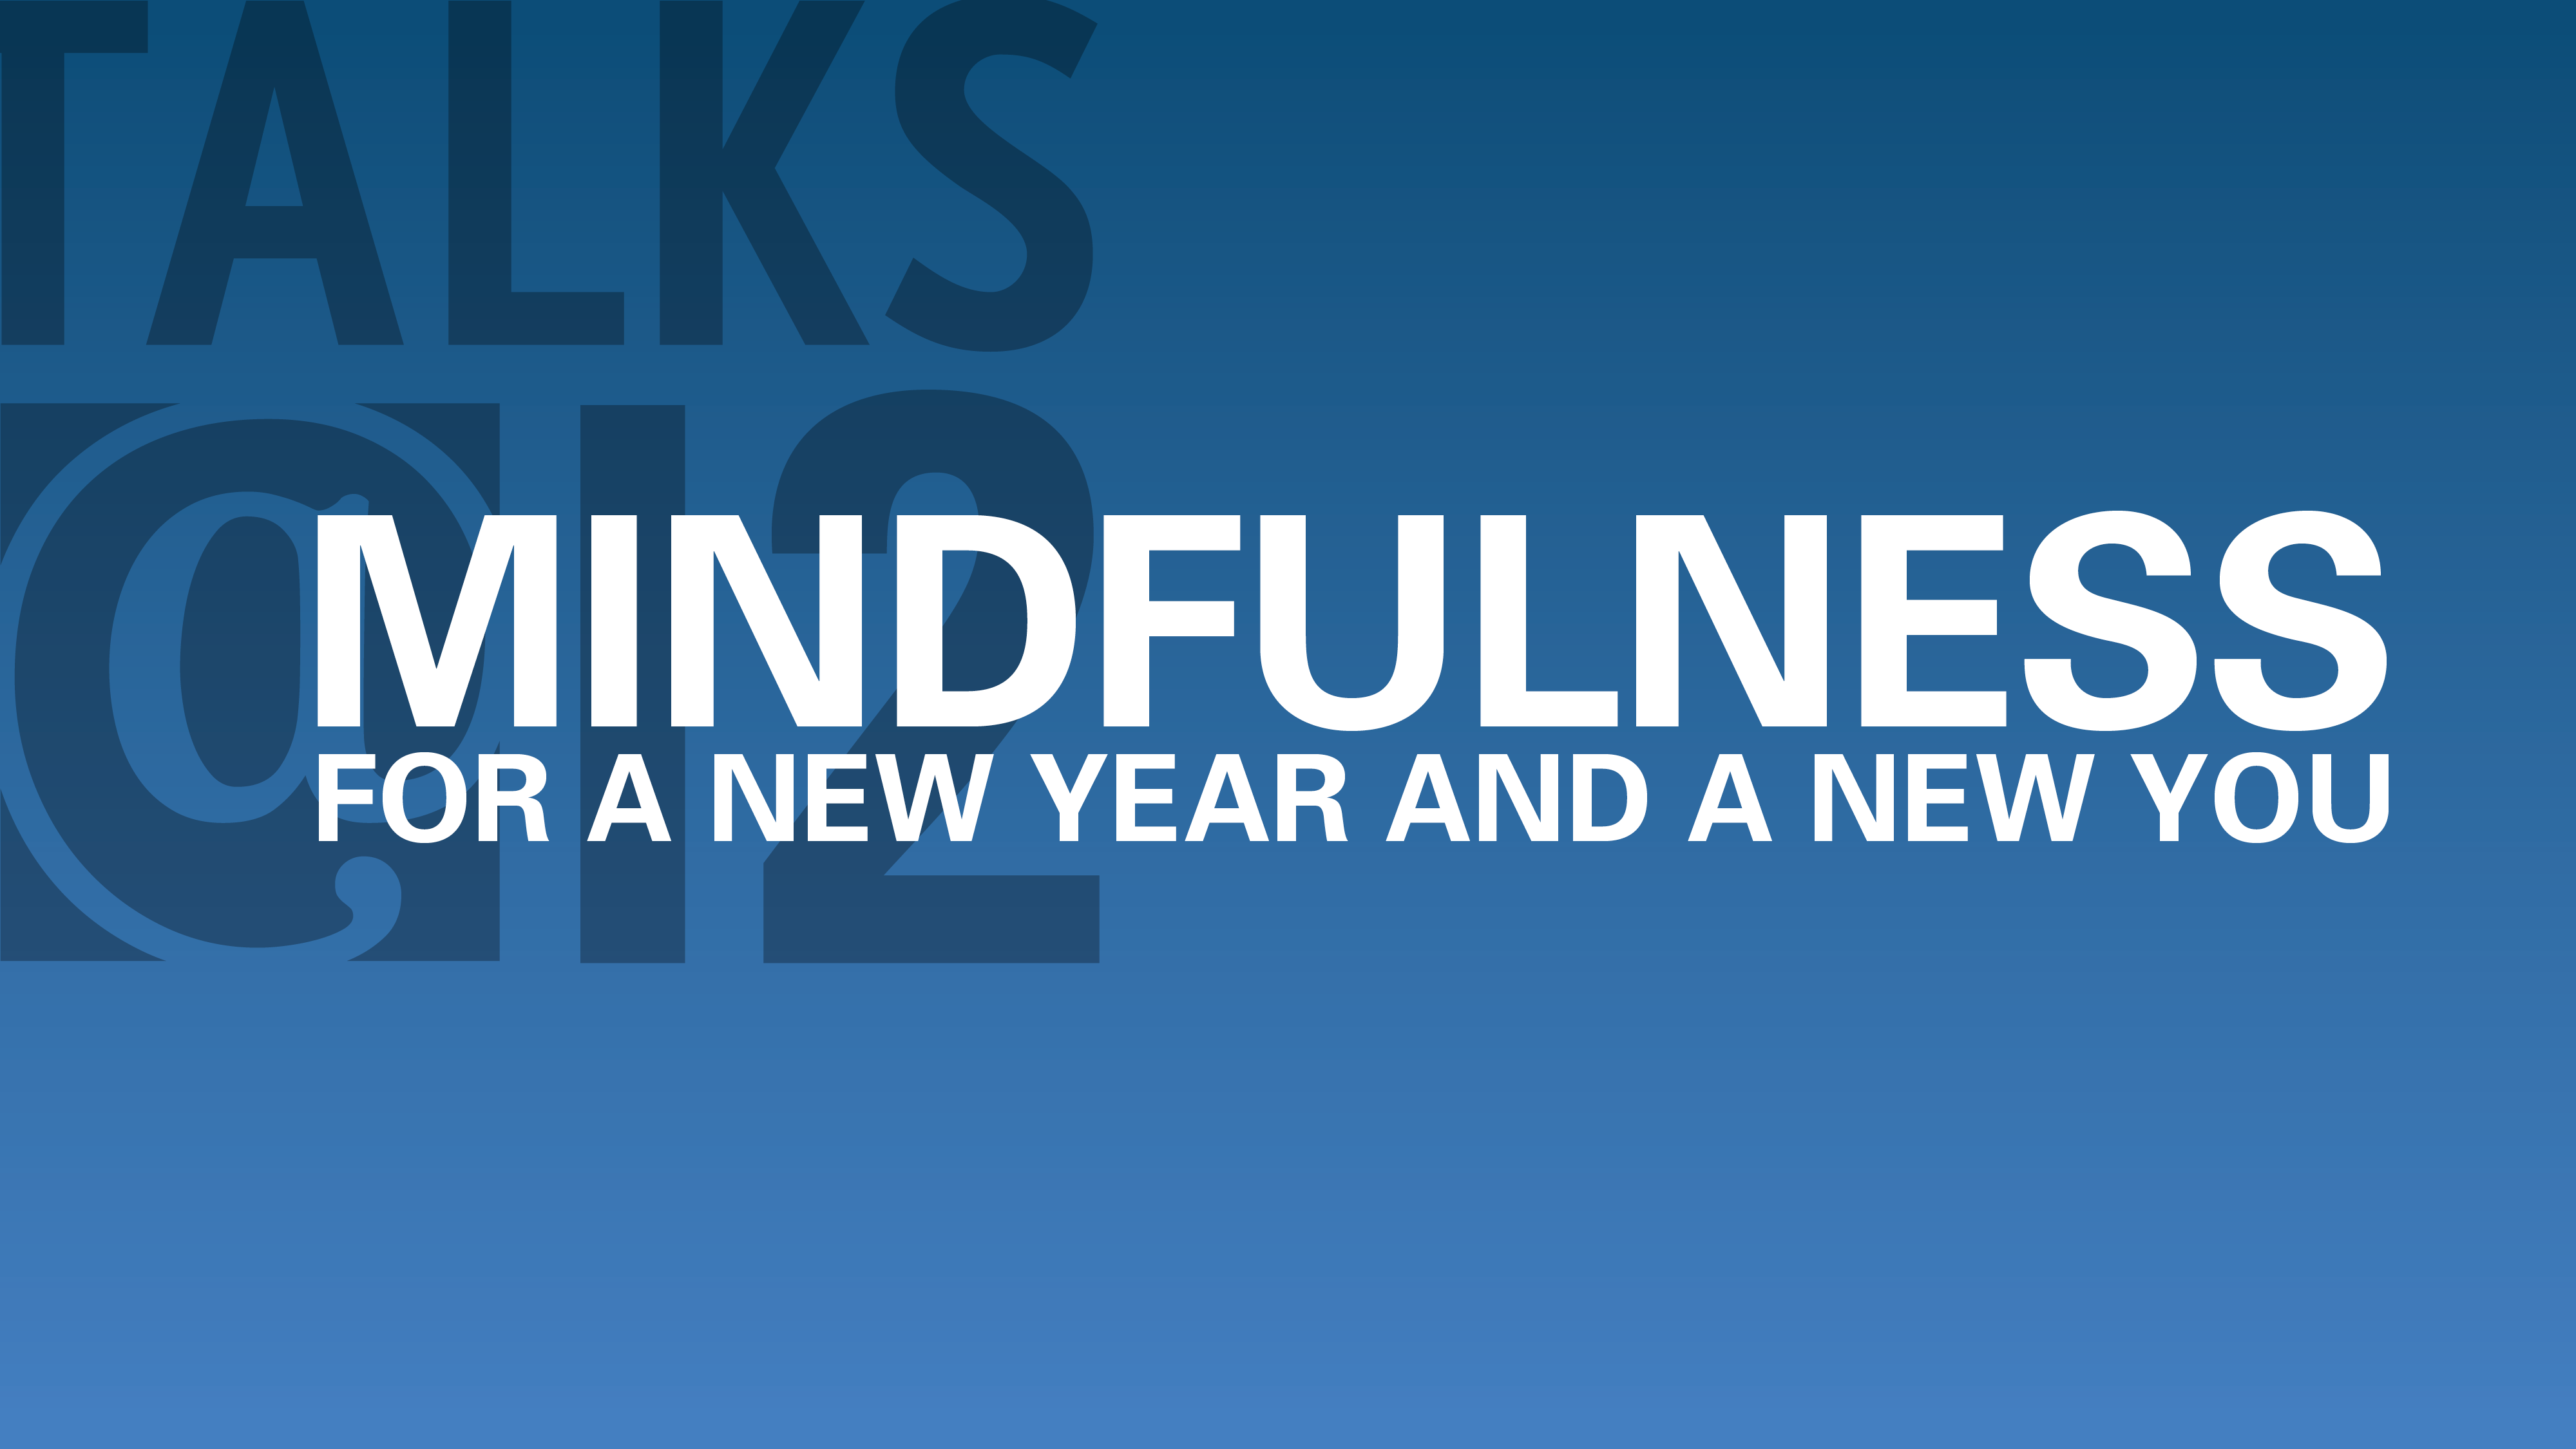 Mindfulness for a New Year and a New You